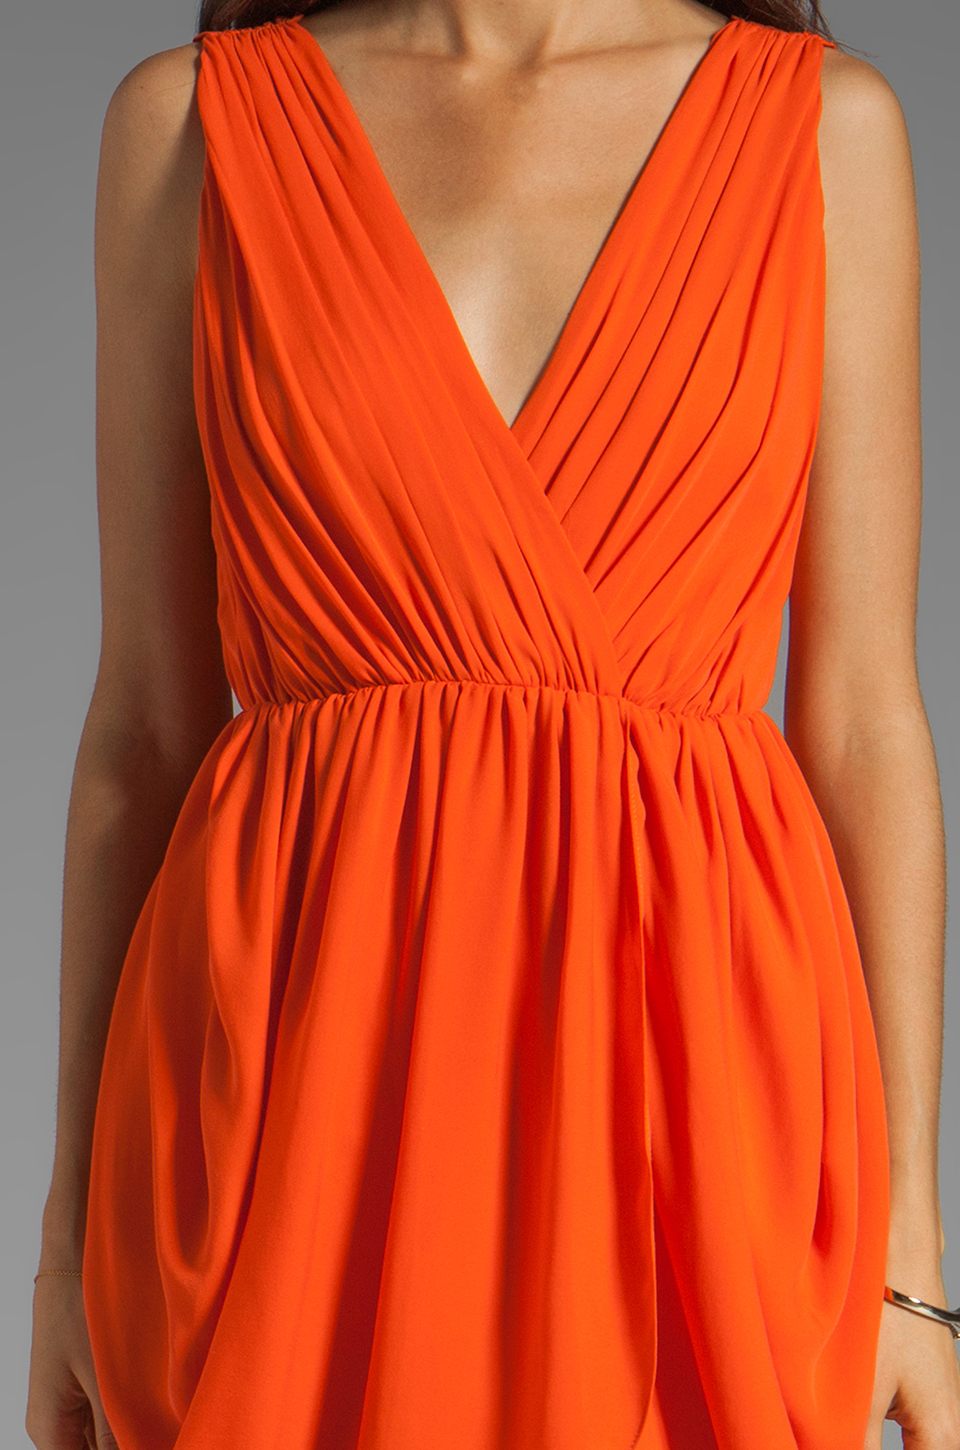 Alice + Olivia Cynthia Draped Tulip Skirt Dress in Sunset Orange